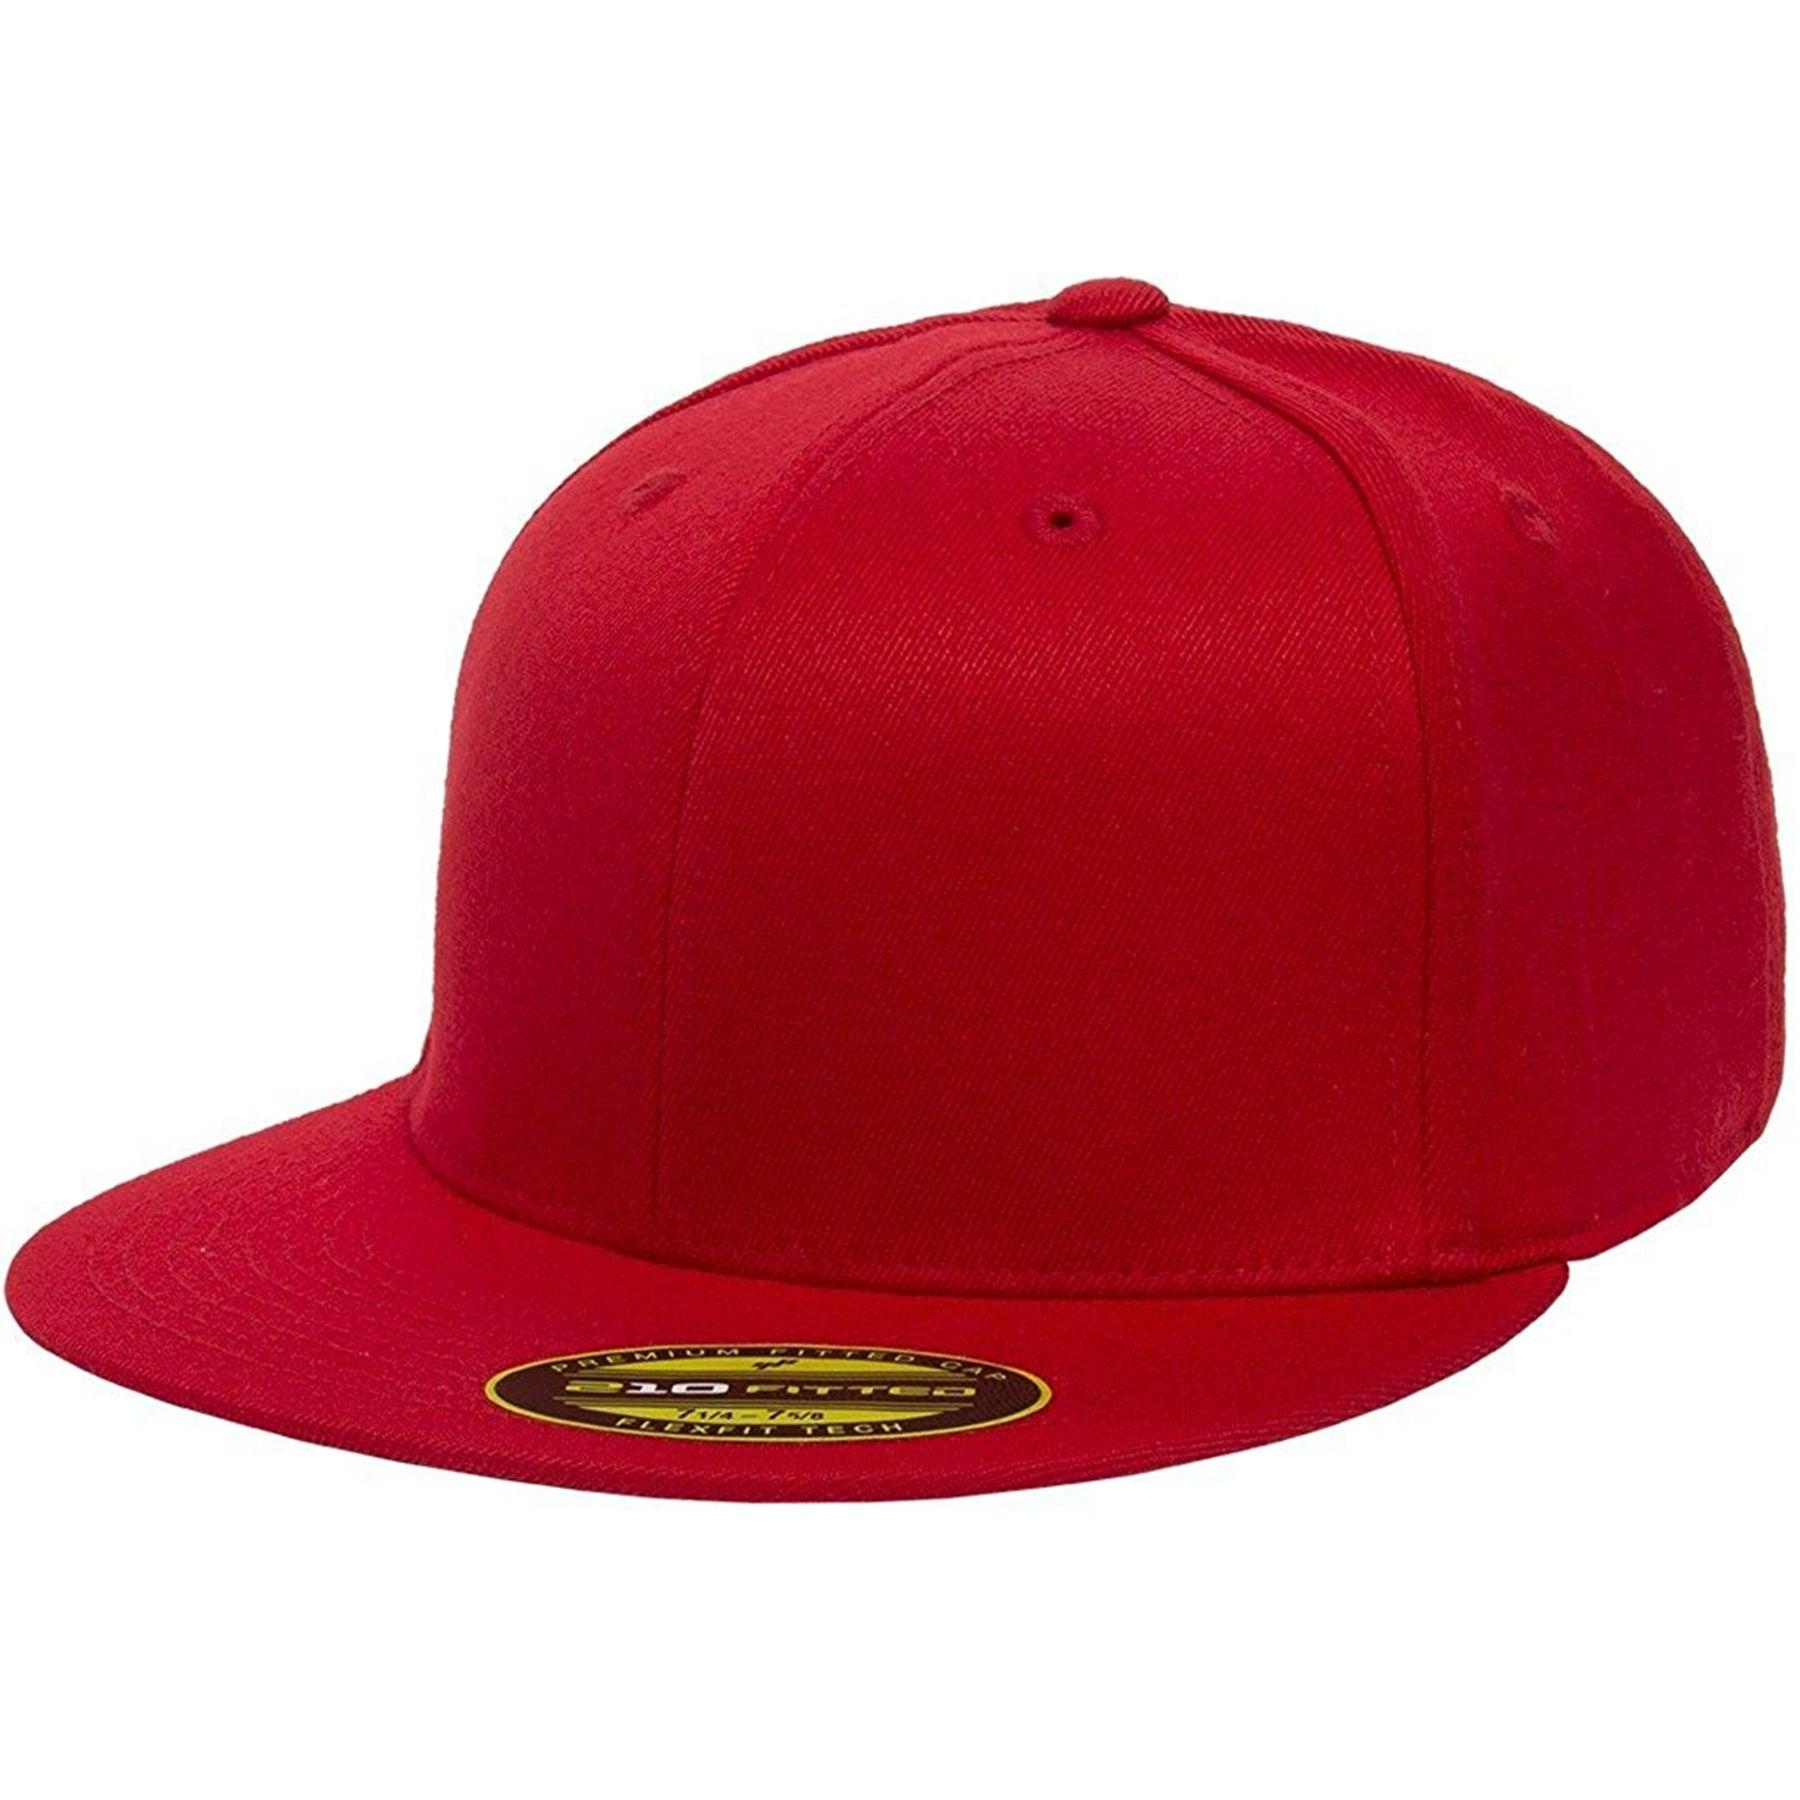 2e03163d0e5 the red flexfit flat brim stretch fit elastic fit fitted hat has a  structured crown